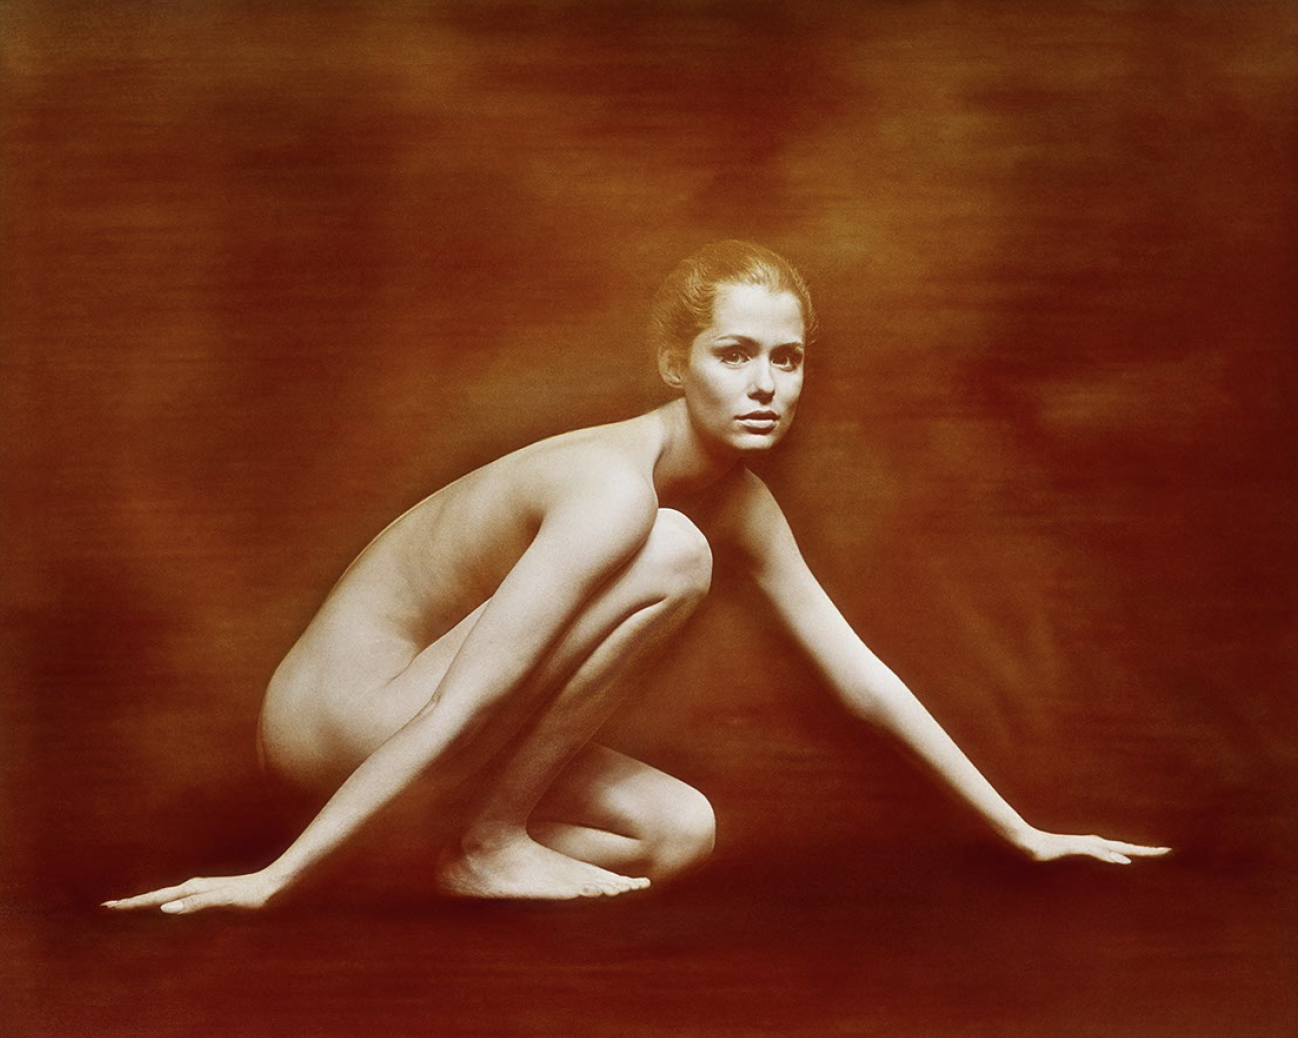 Milton H. Greene,  Lauren Hutton,  ca. 1950, Printed on Innova Exhibition Photo Baryta 310gsm Paper, Limited Edition Sets: 15 of 16 x 20 inches, 20 of 20 x 25 inches, 7 of 45 x 45 inches (max image size)